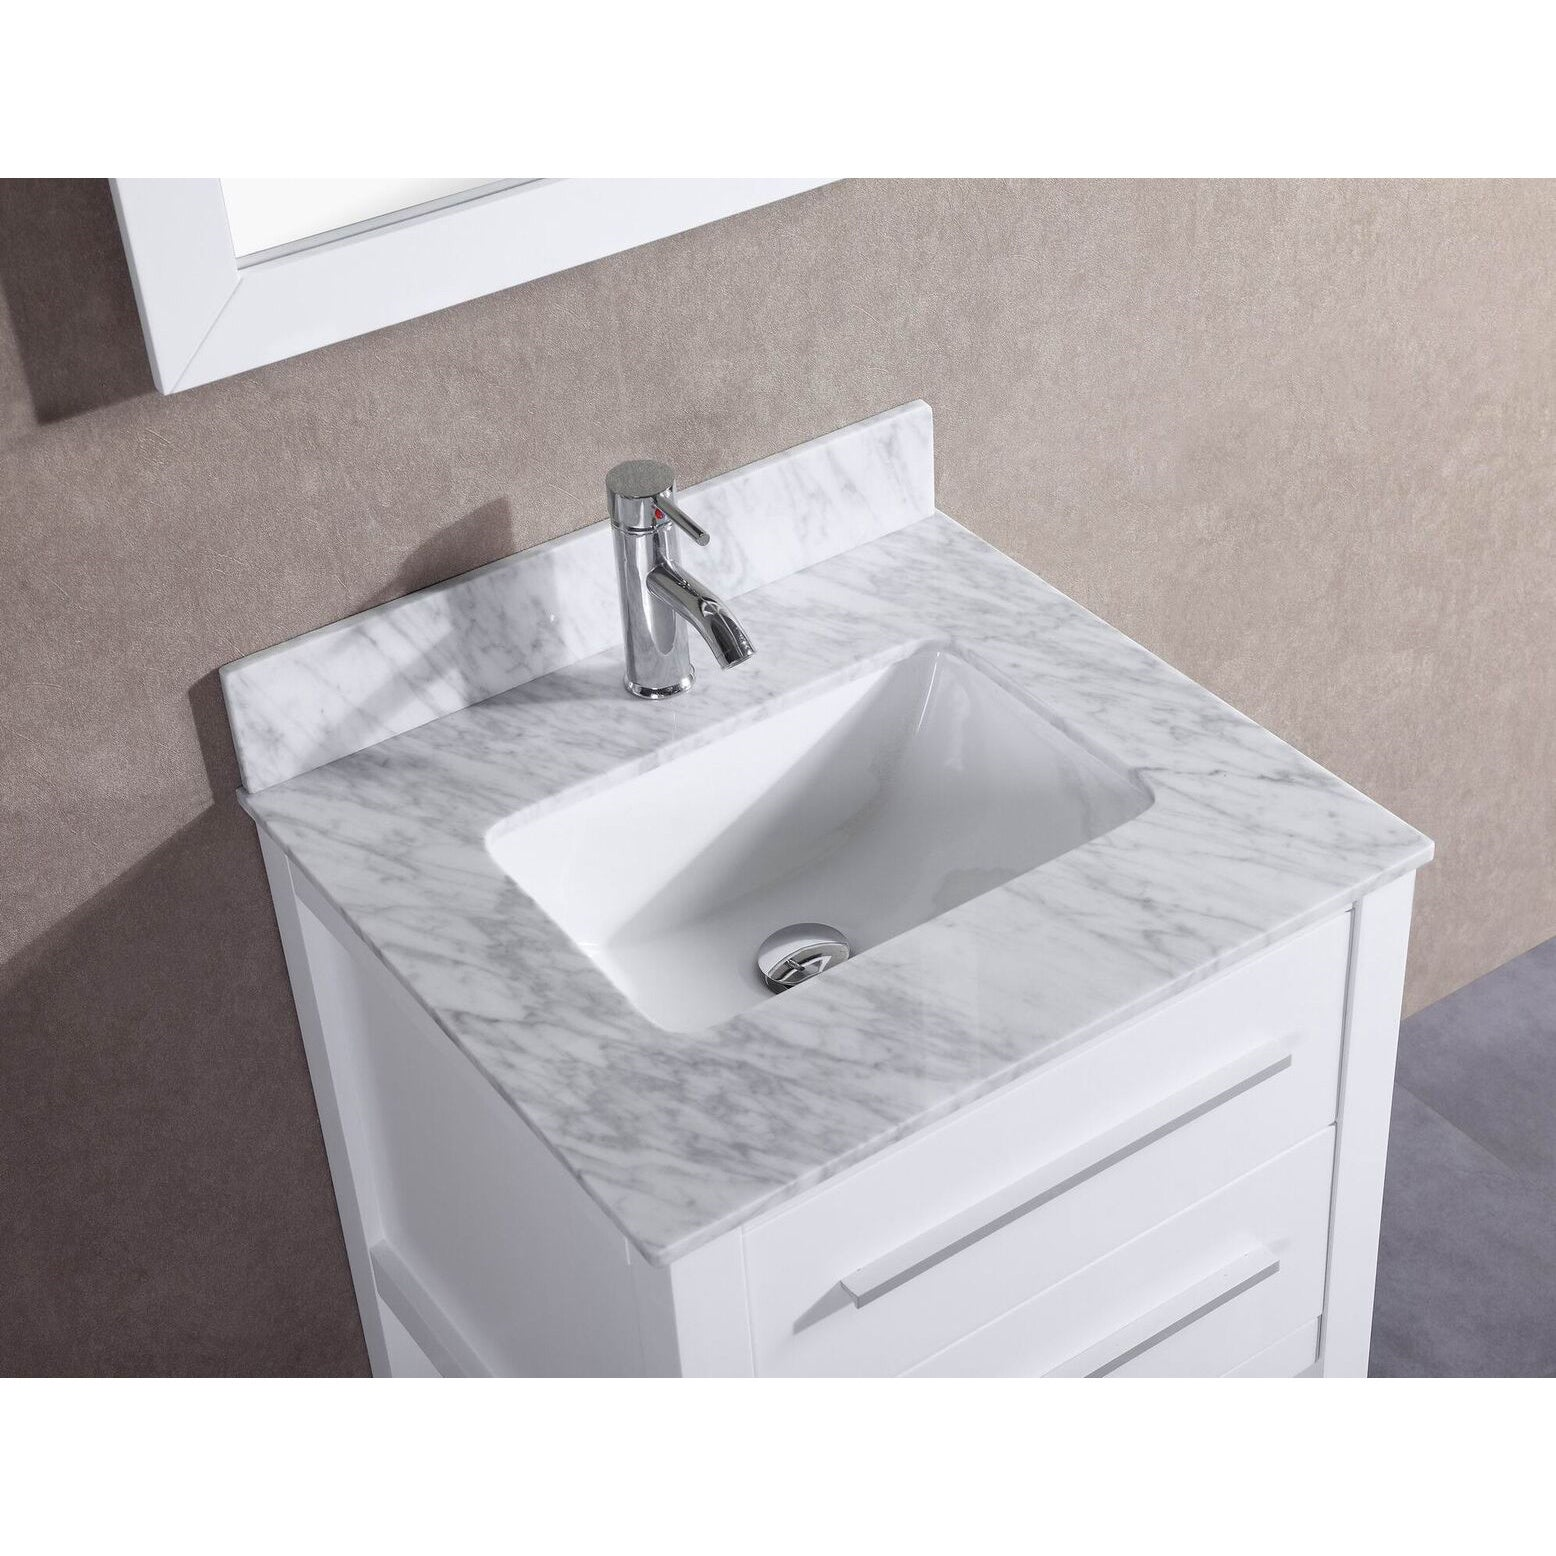 original ideas furniture vanity plans inch cabinets sink awesome astonishing fantastic vanities white bathroom